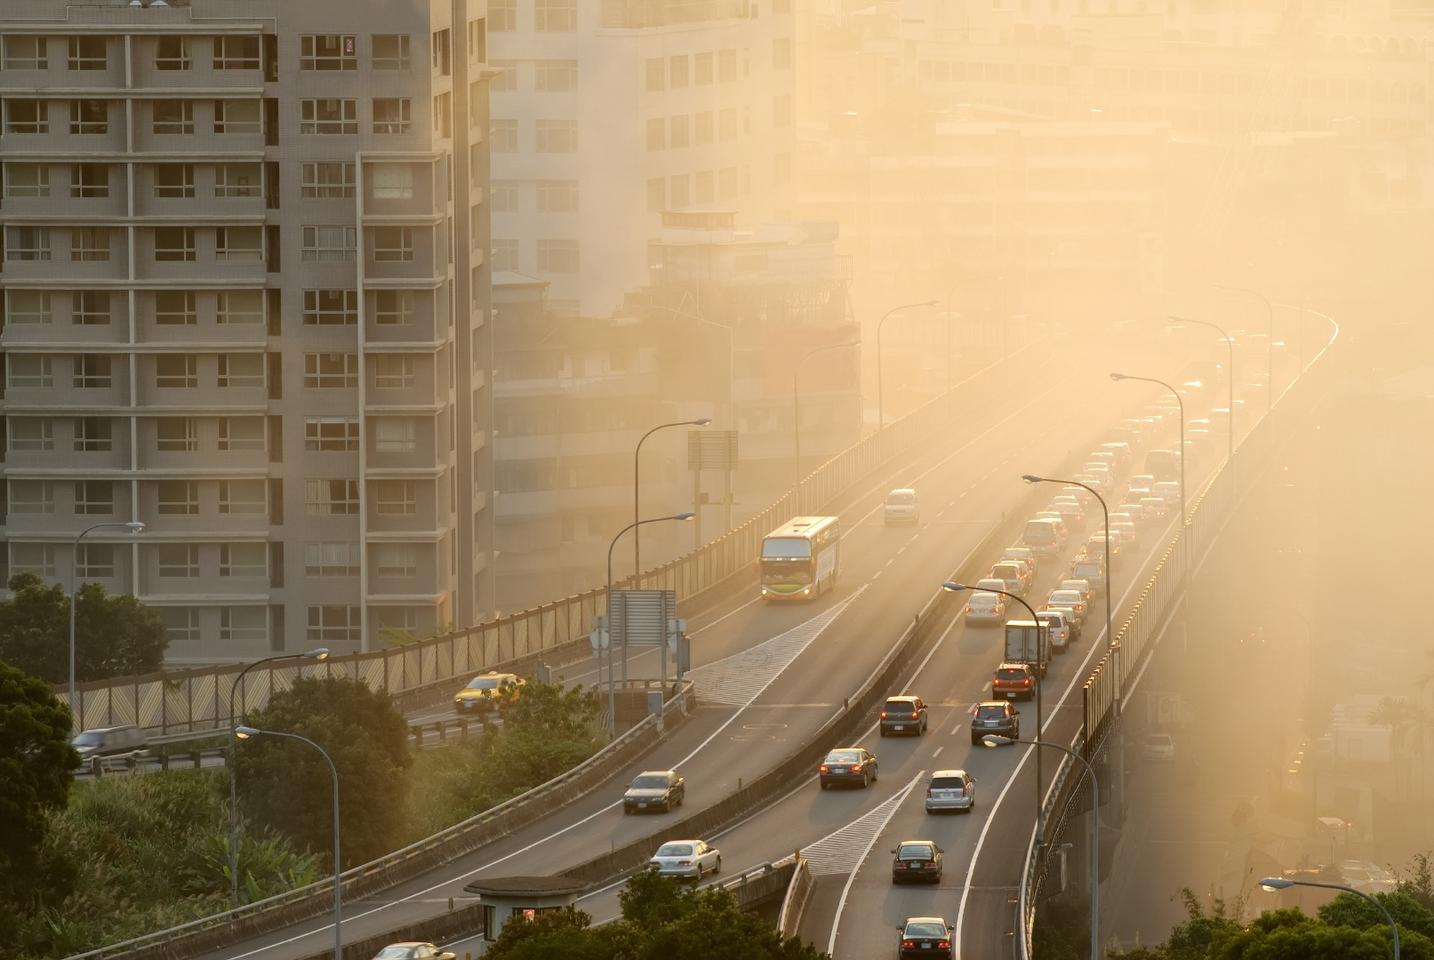 Without offering a causal conclusion, a new study suggests a strong observational association between air pollution and adolescent psychotic experiences